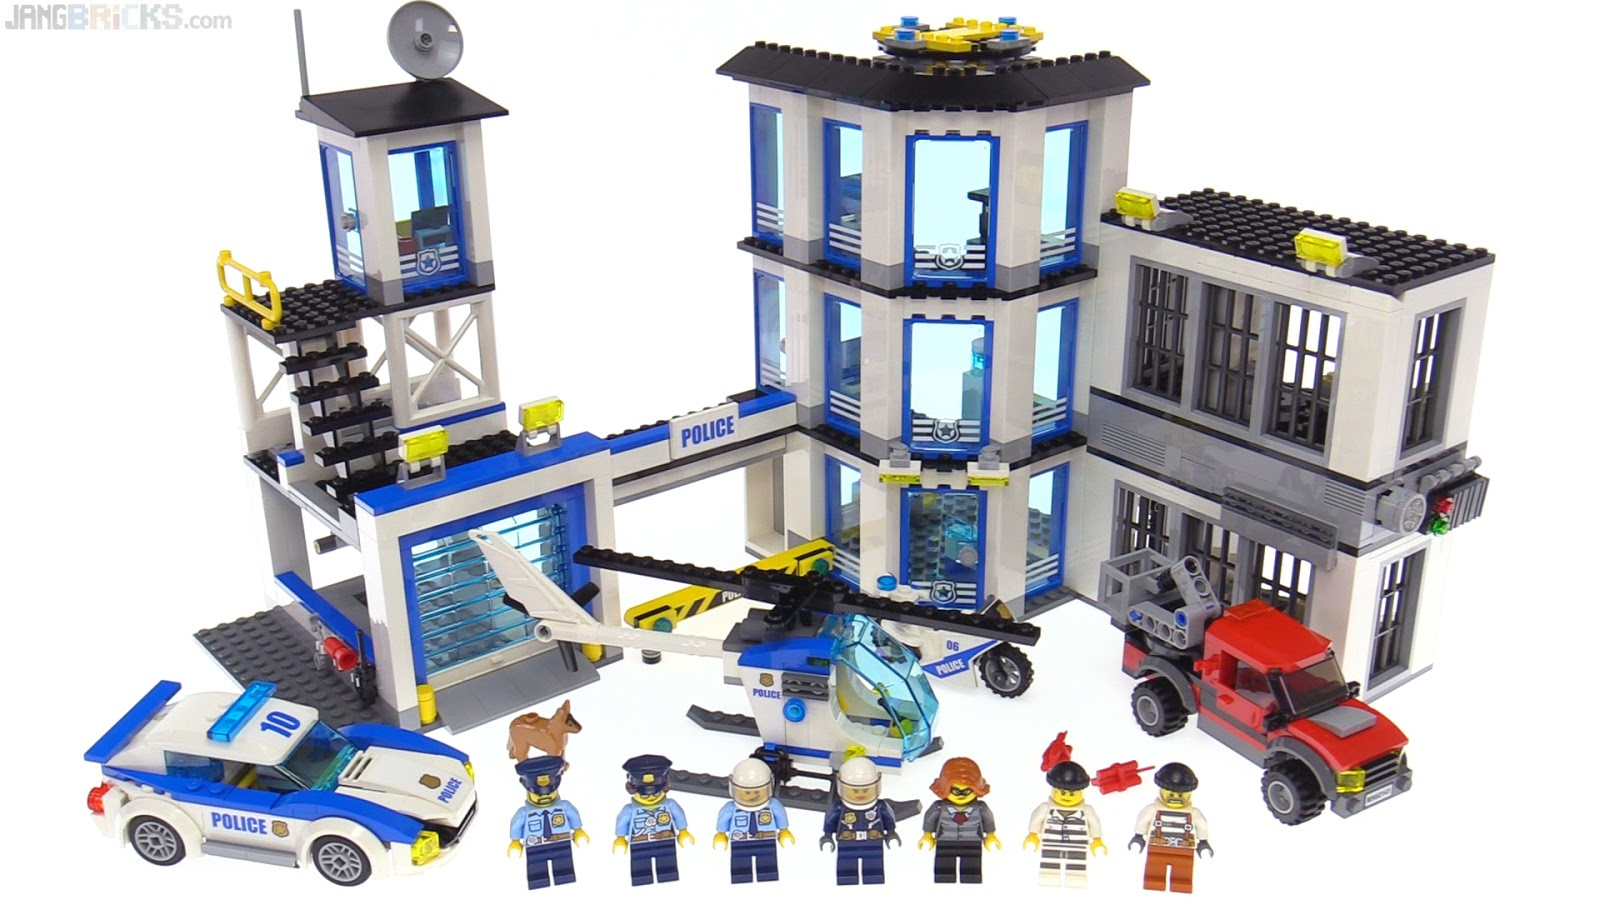 lego city 2017 police station review 60141. Black Bedroom Furniture Sets. Home Design Ideas